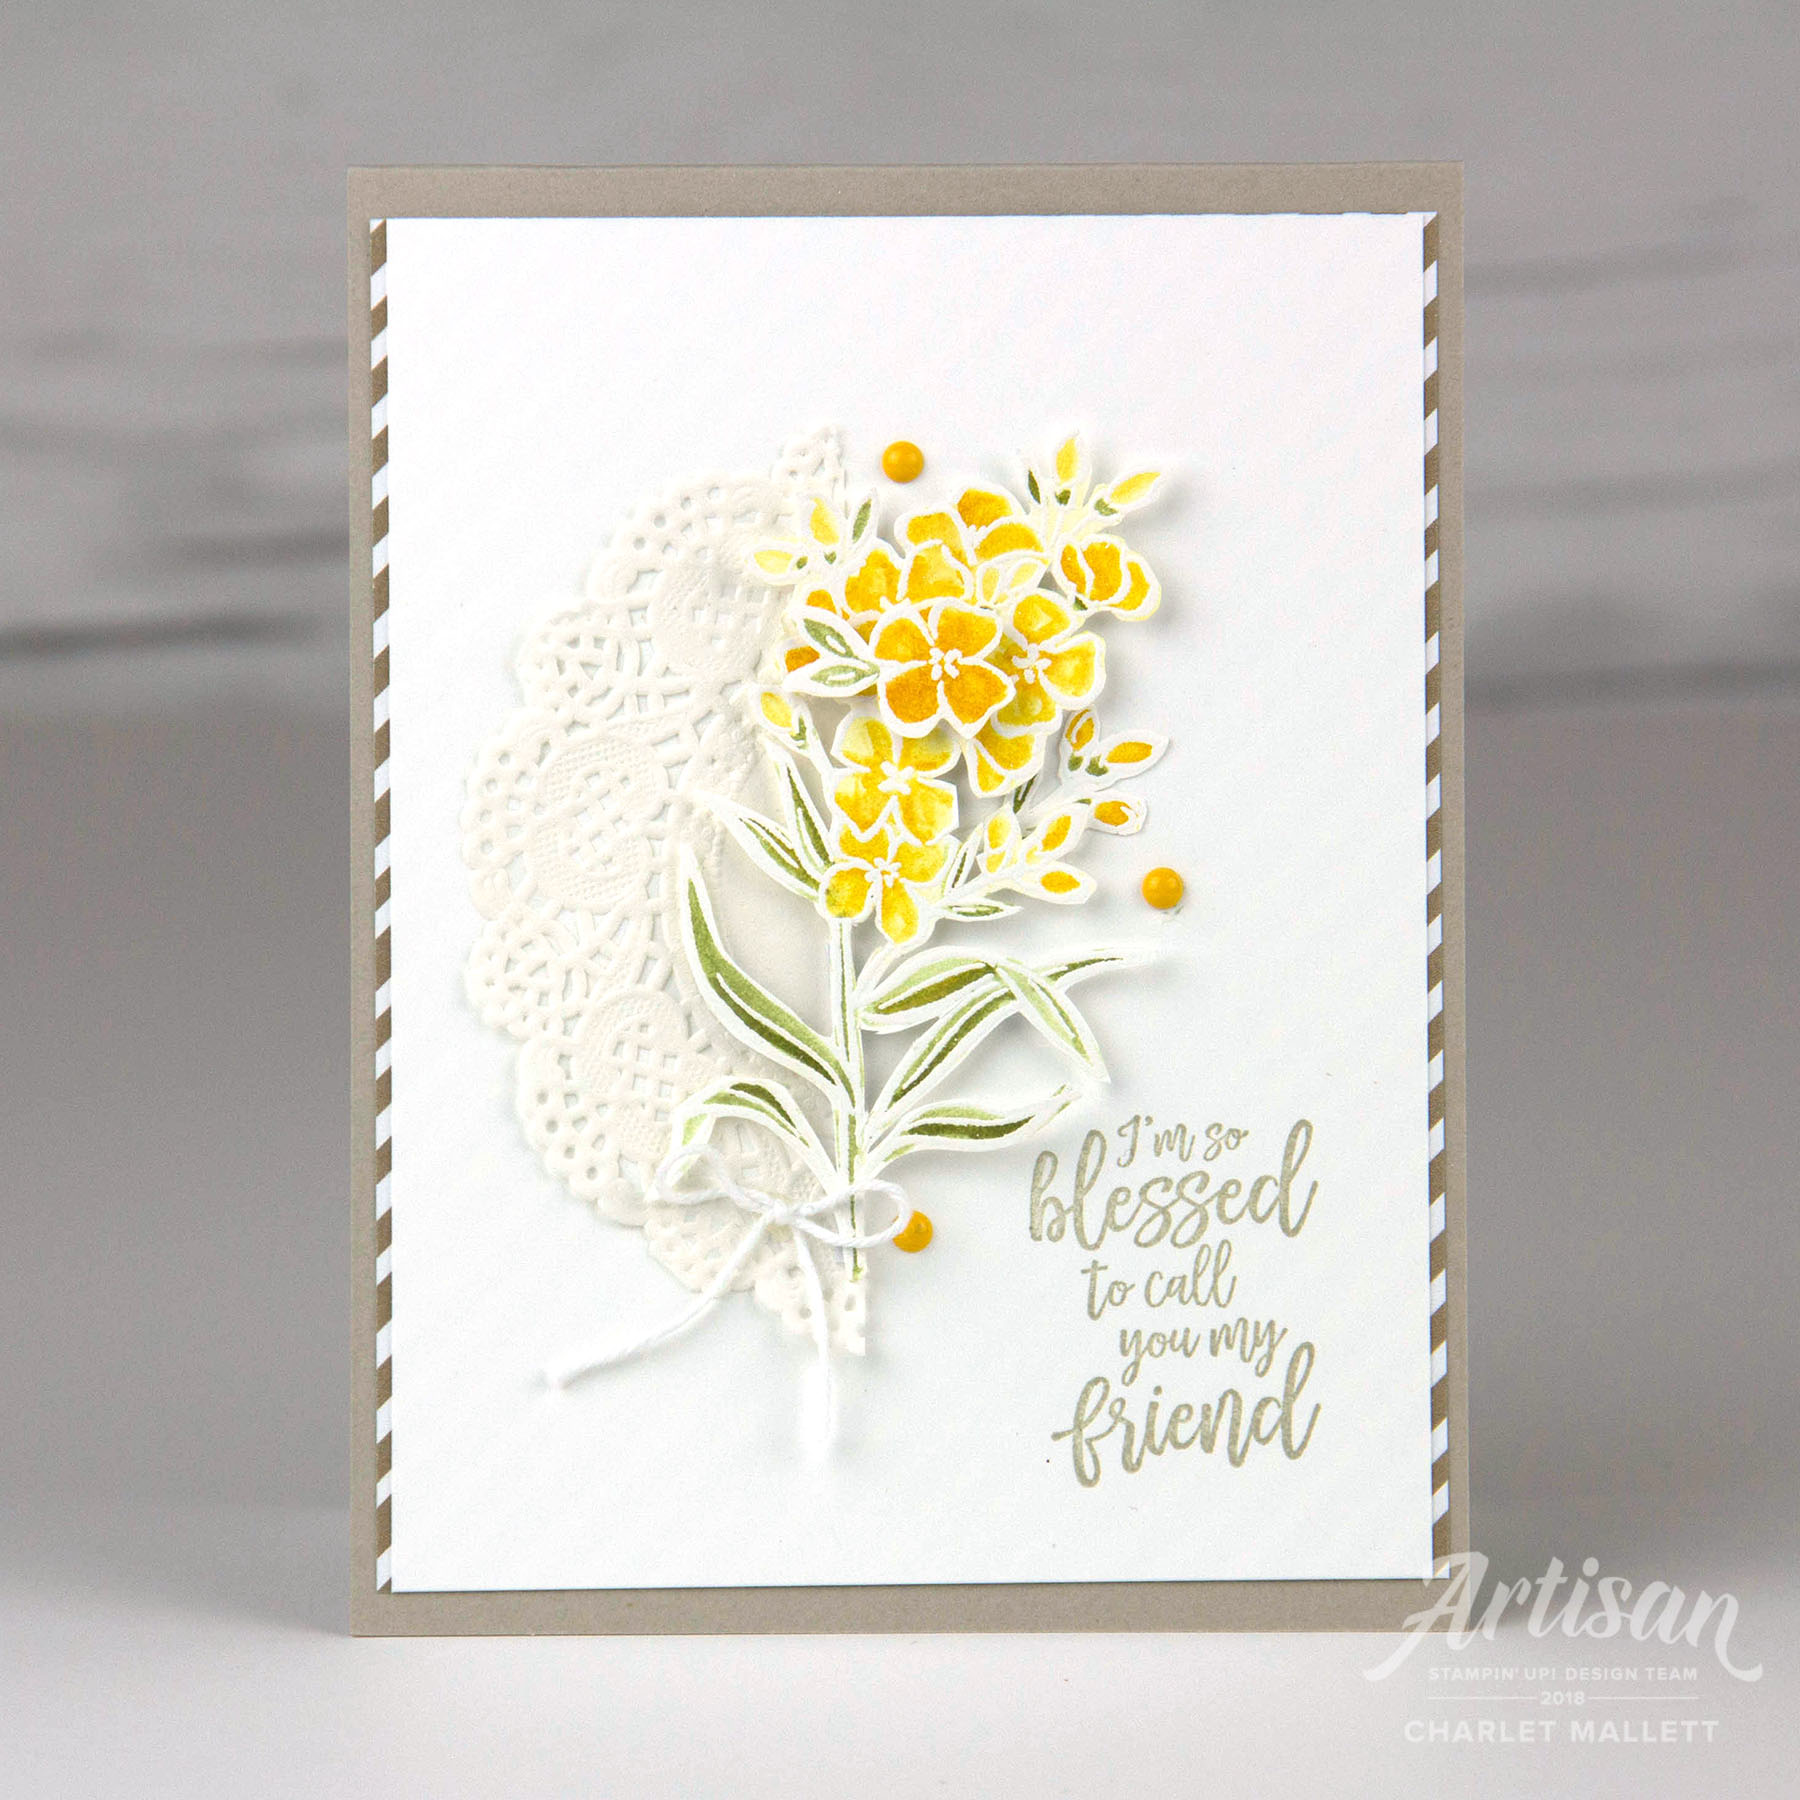 Friend card using the Southern Serenade stamp set - Charlet Mallett, Stampin' Up!